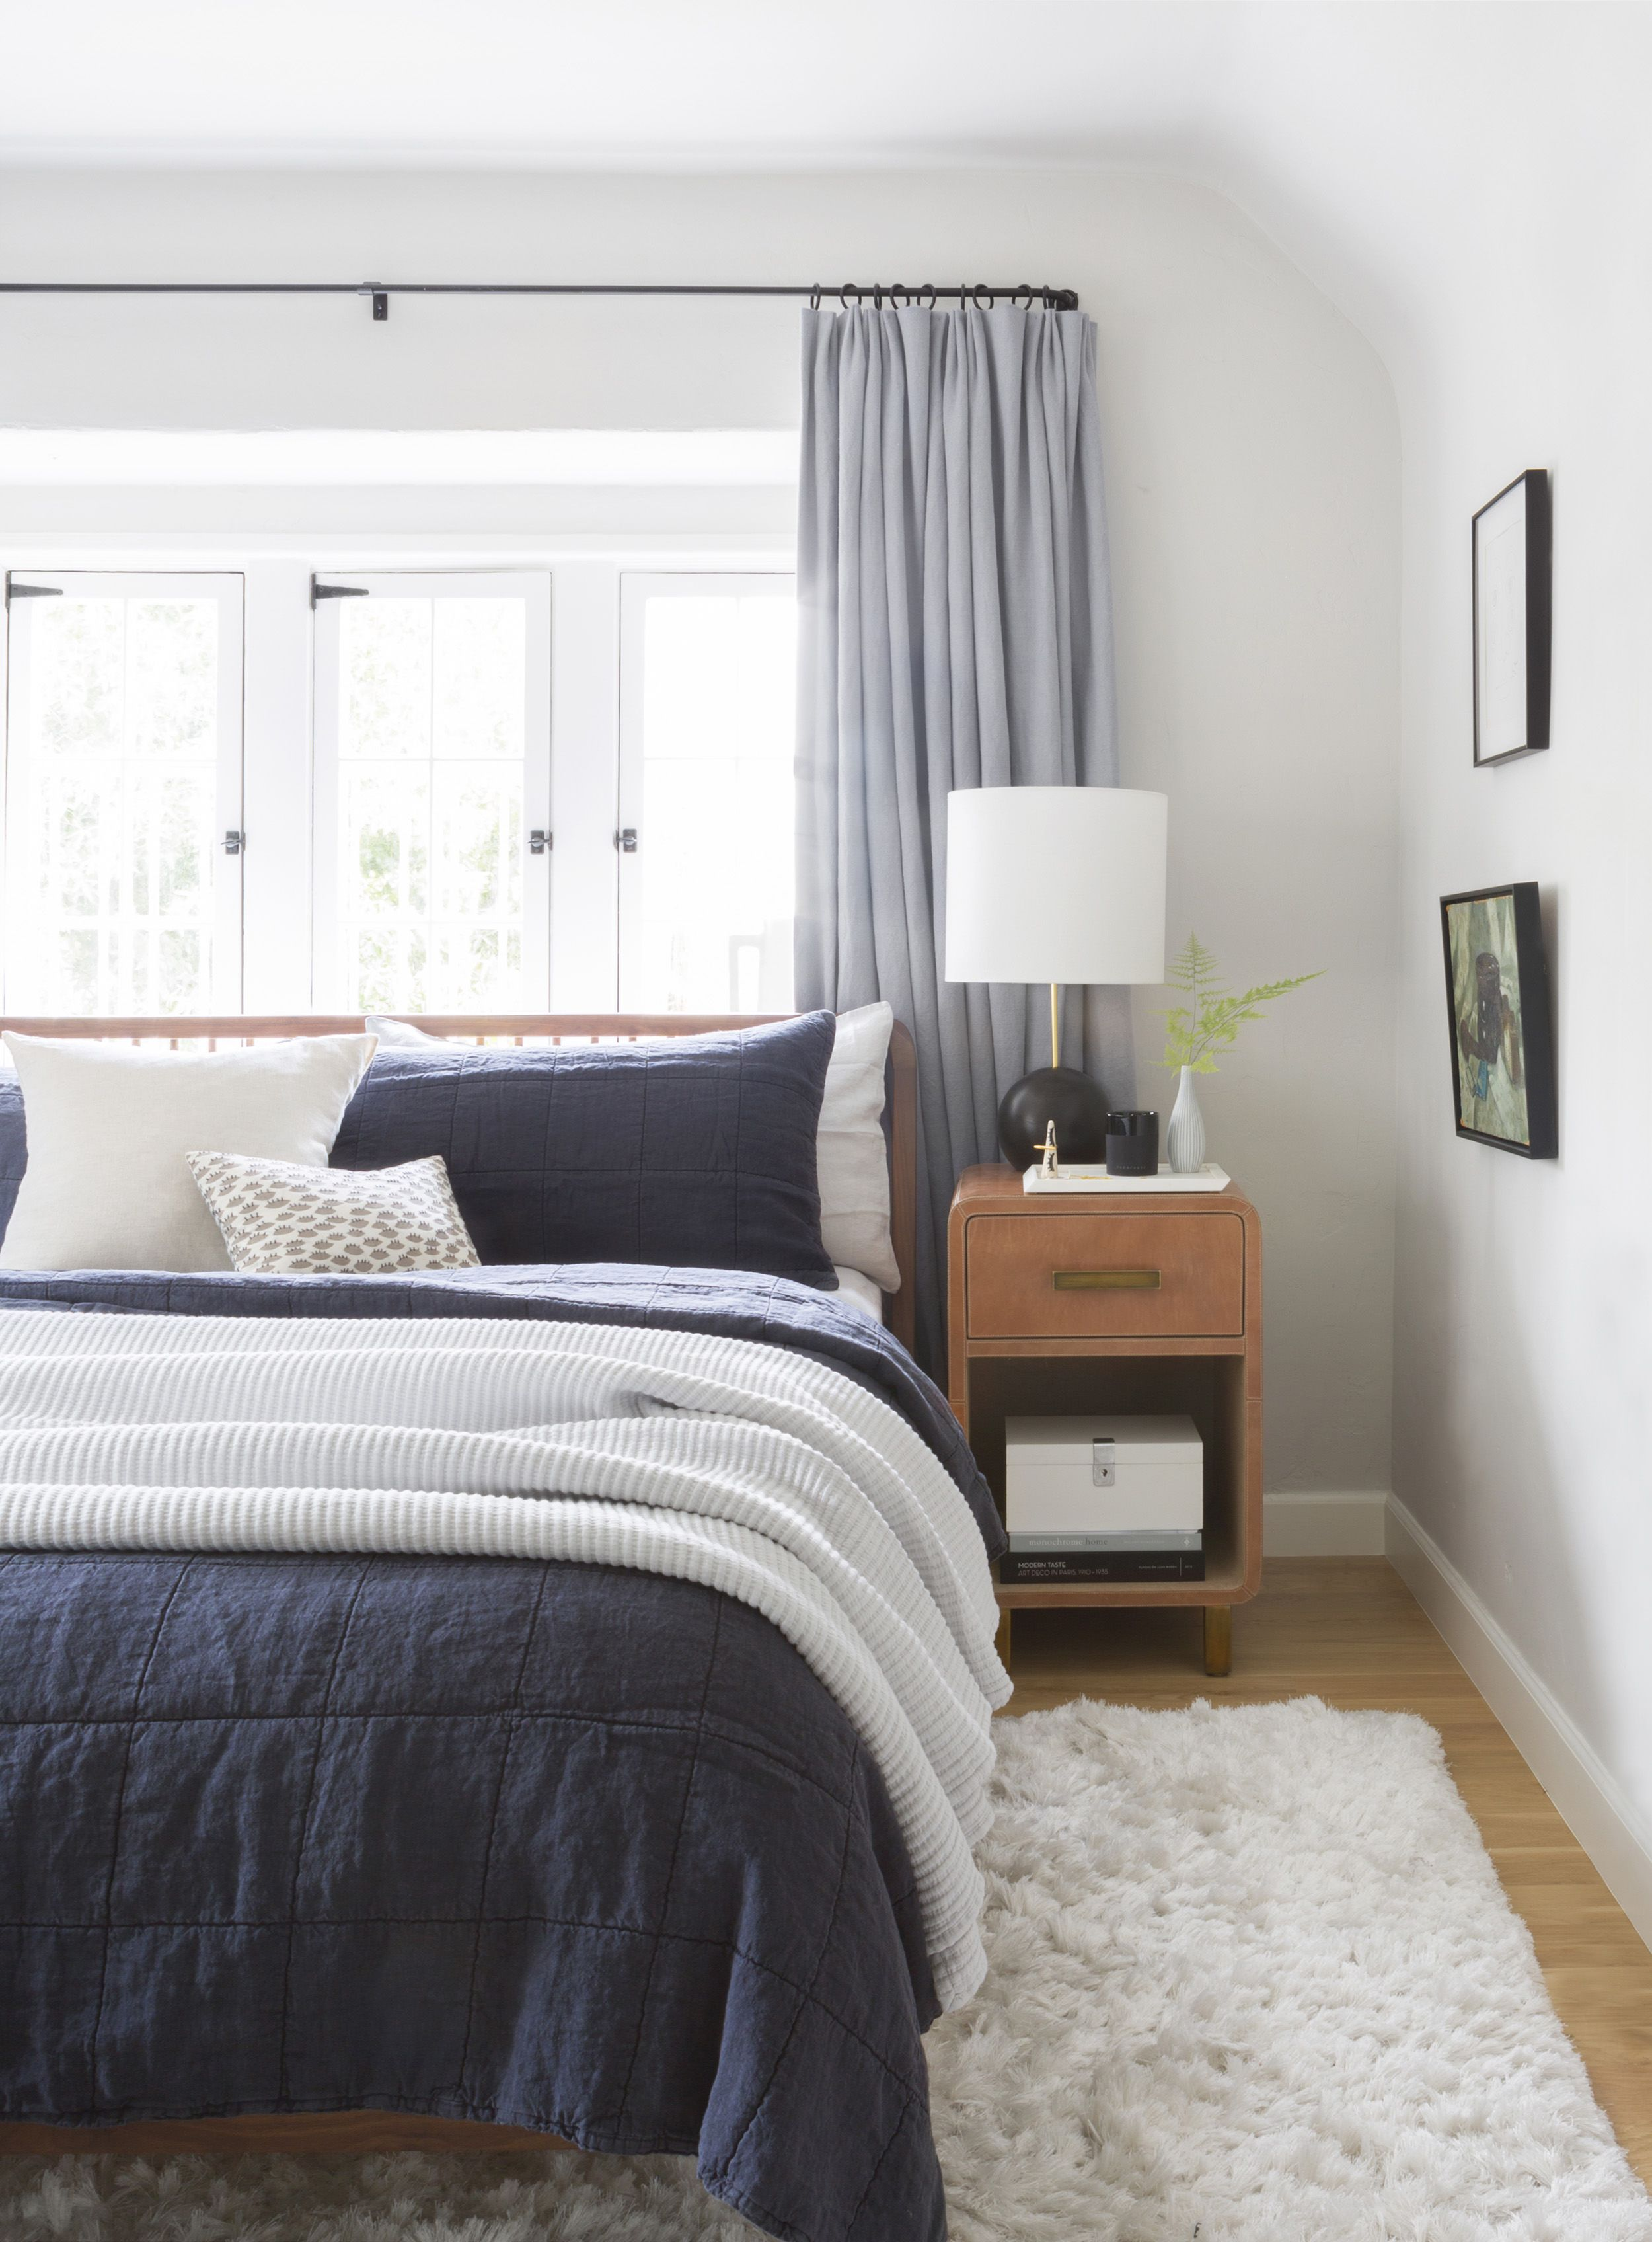 A Refresh Around The House with Parachute Our Favorites Roundup